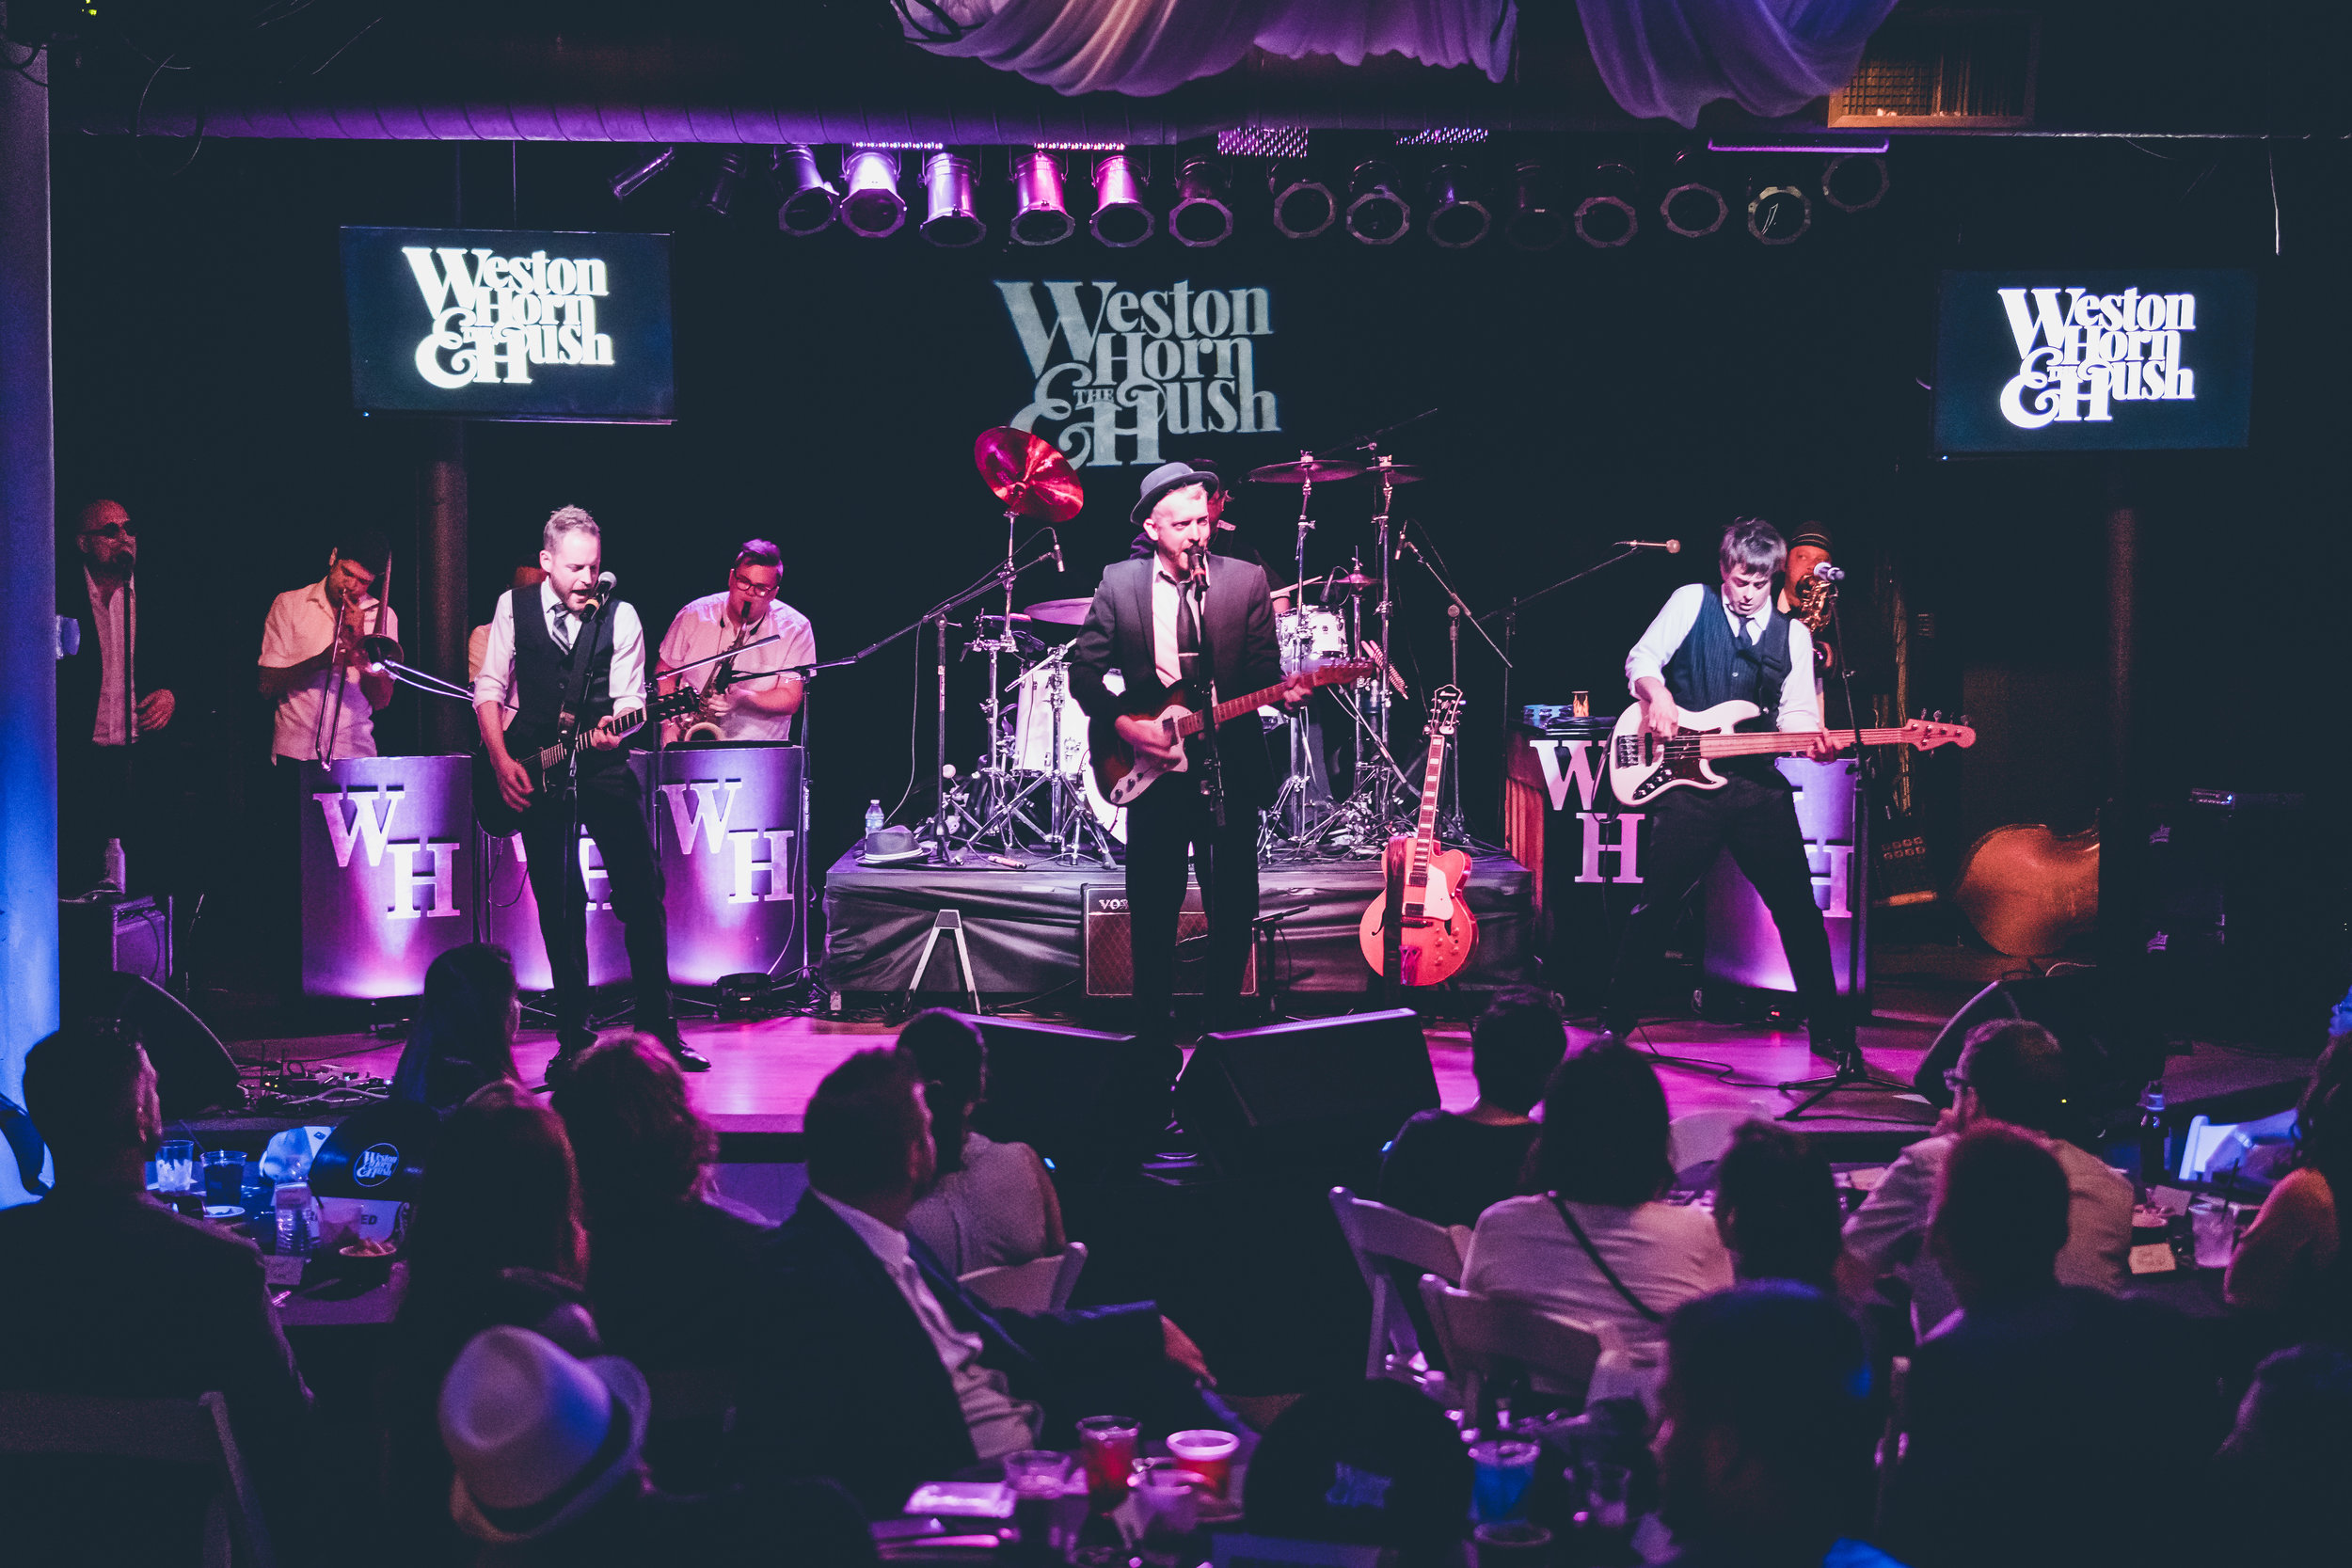 Weston Horn and The Hush CD Release at IDL Ballroom 6-30-17 - Bound For Glory Productions-1.jpg